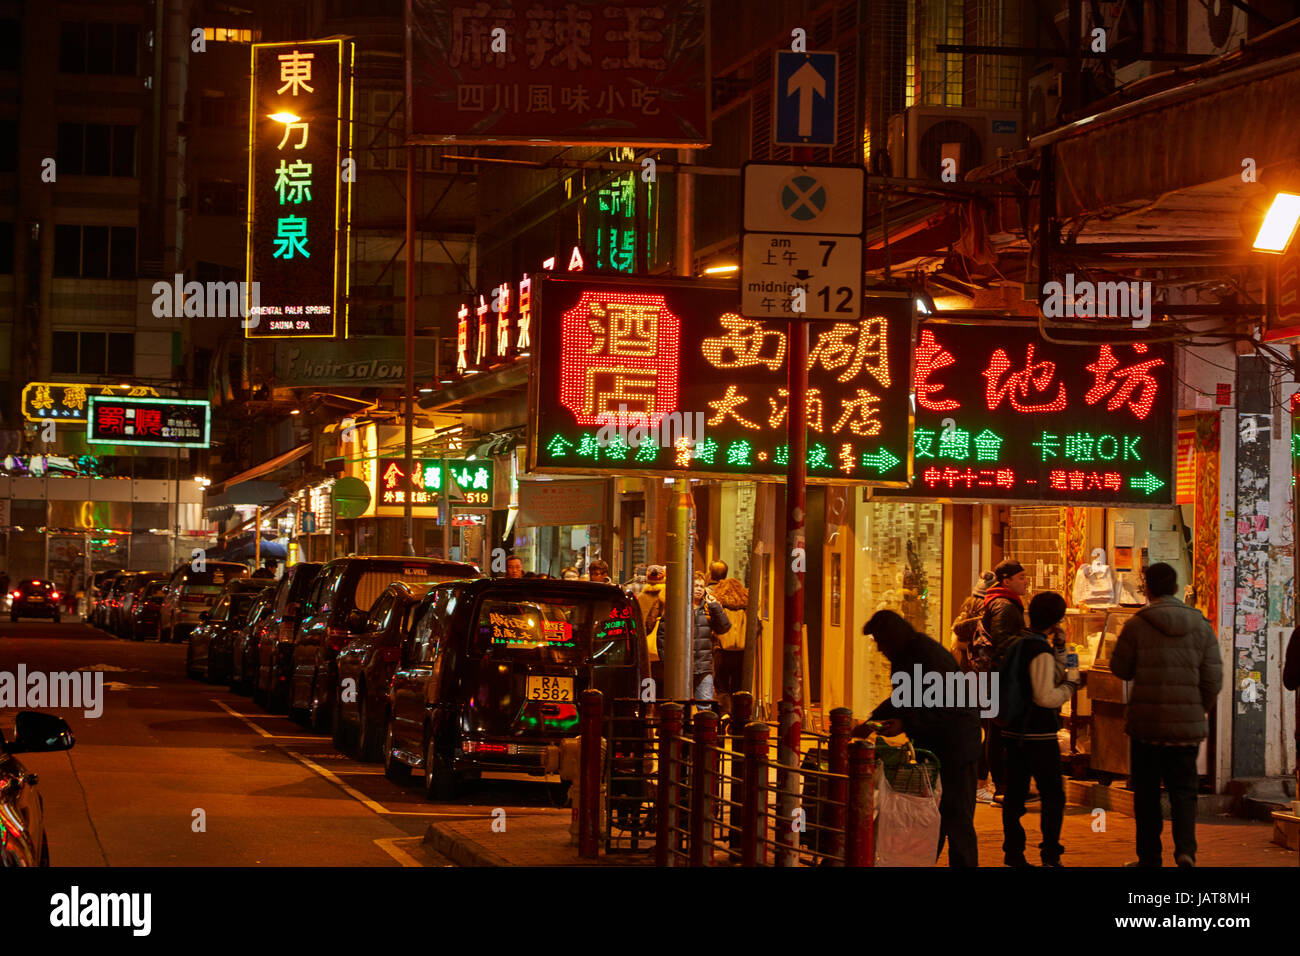 Neon lights on Parkes Street, Kowloon, Hong Kong, China - Stock Image